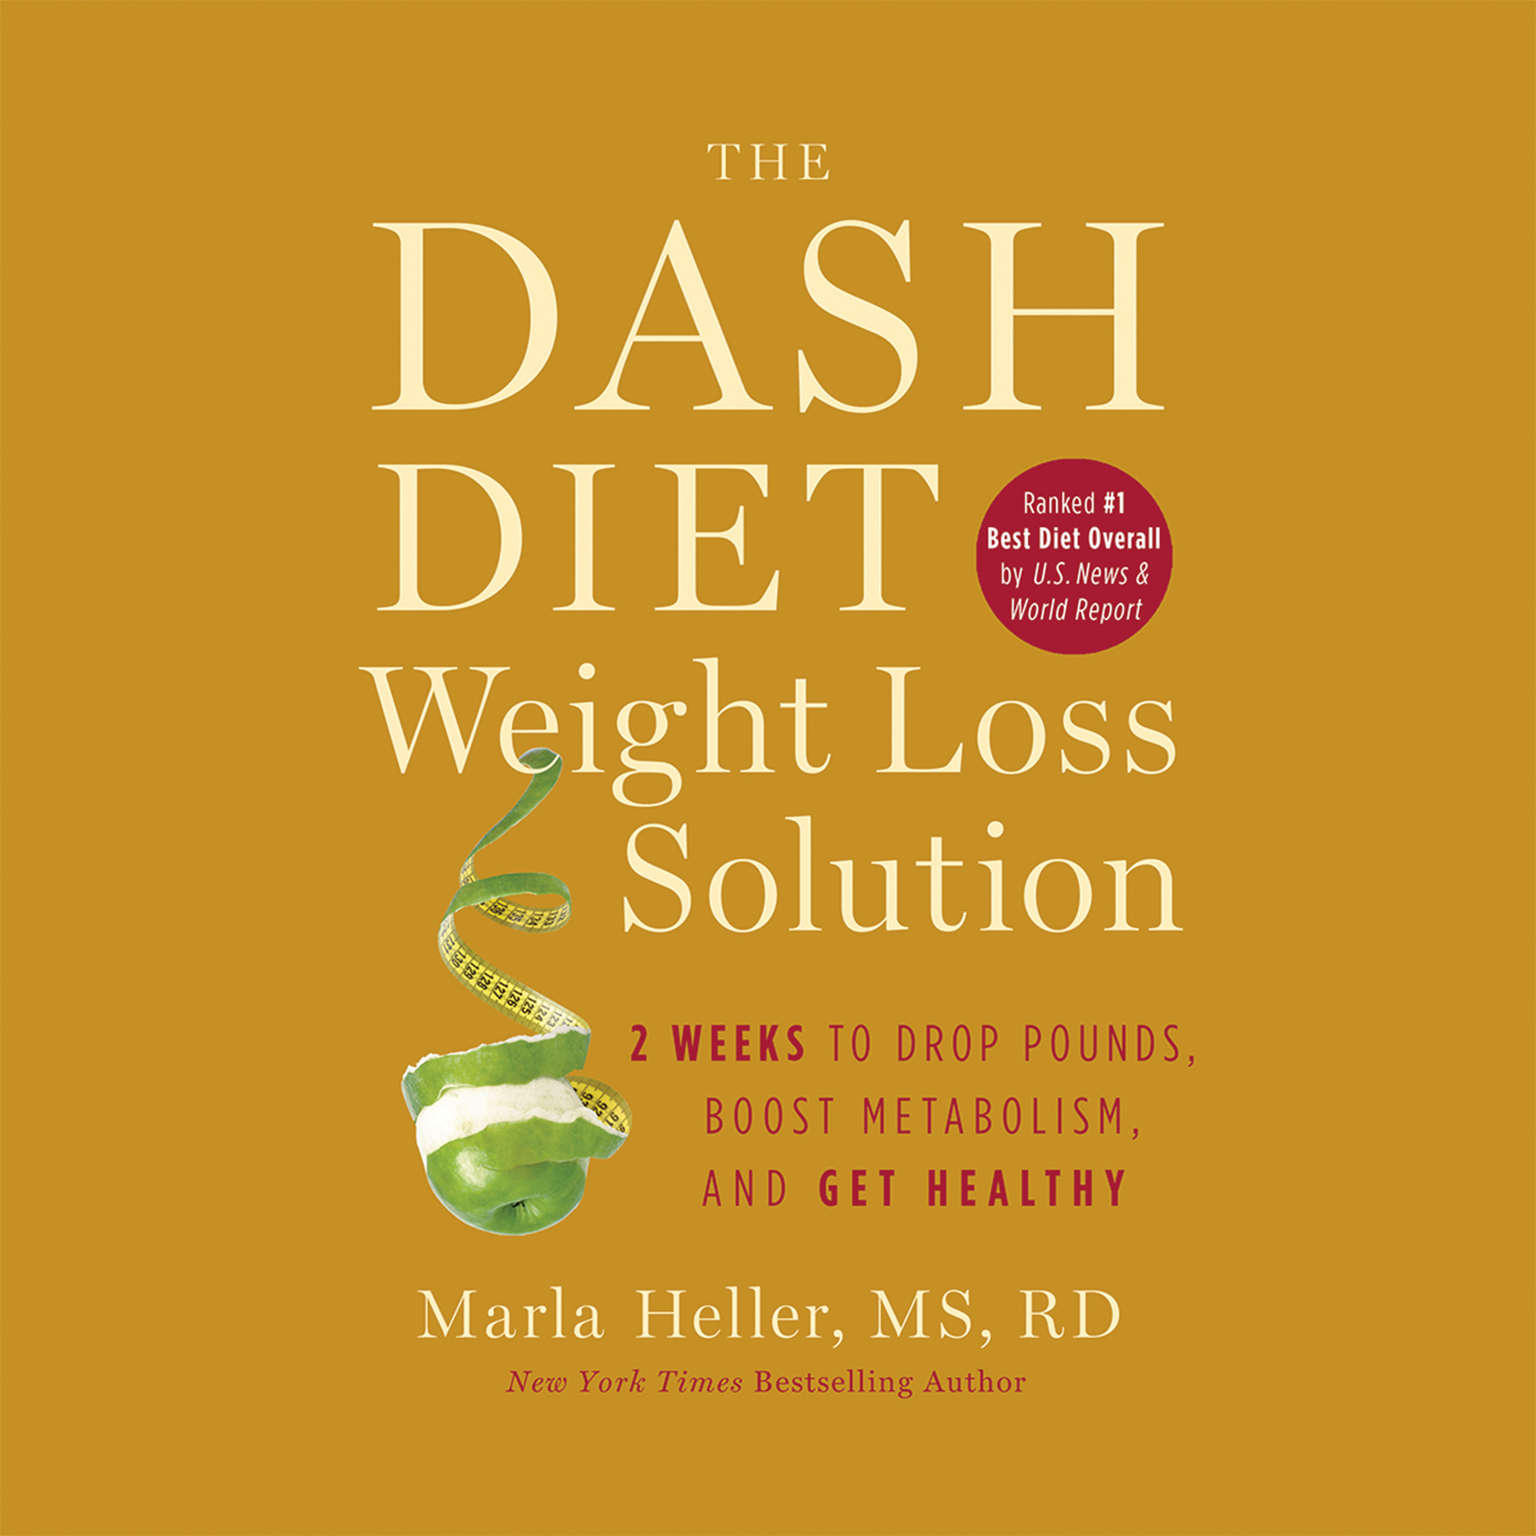 Printable The DASH Diet Weight Loss Solution: 2 Weeks to Drop Pounds, Boost Metabolism, and Get Healthy Audiobook Cover Art